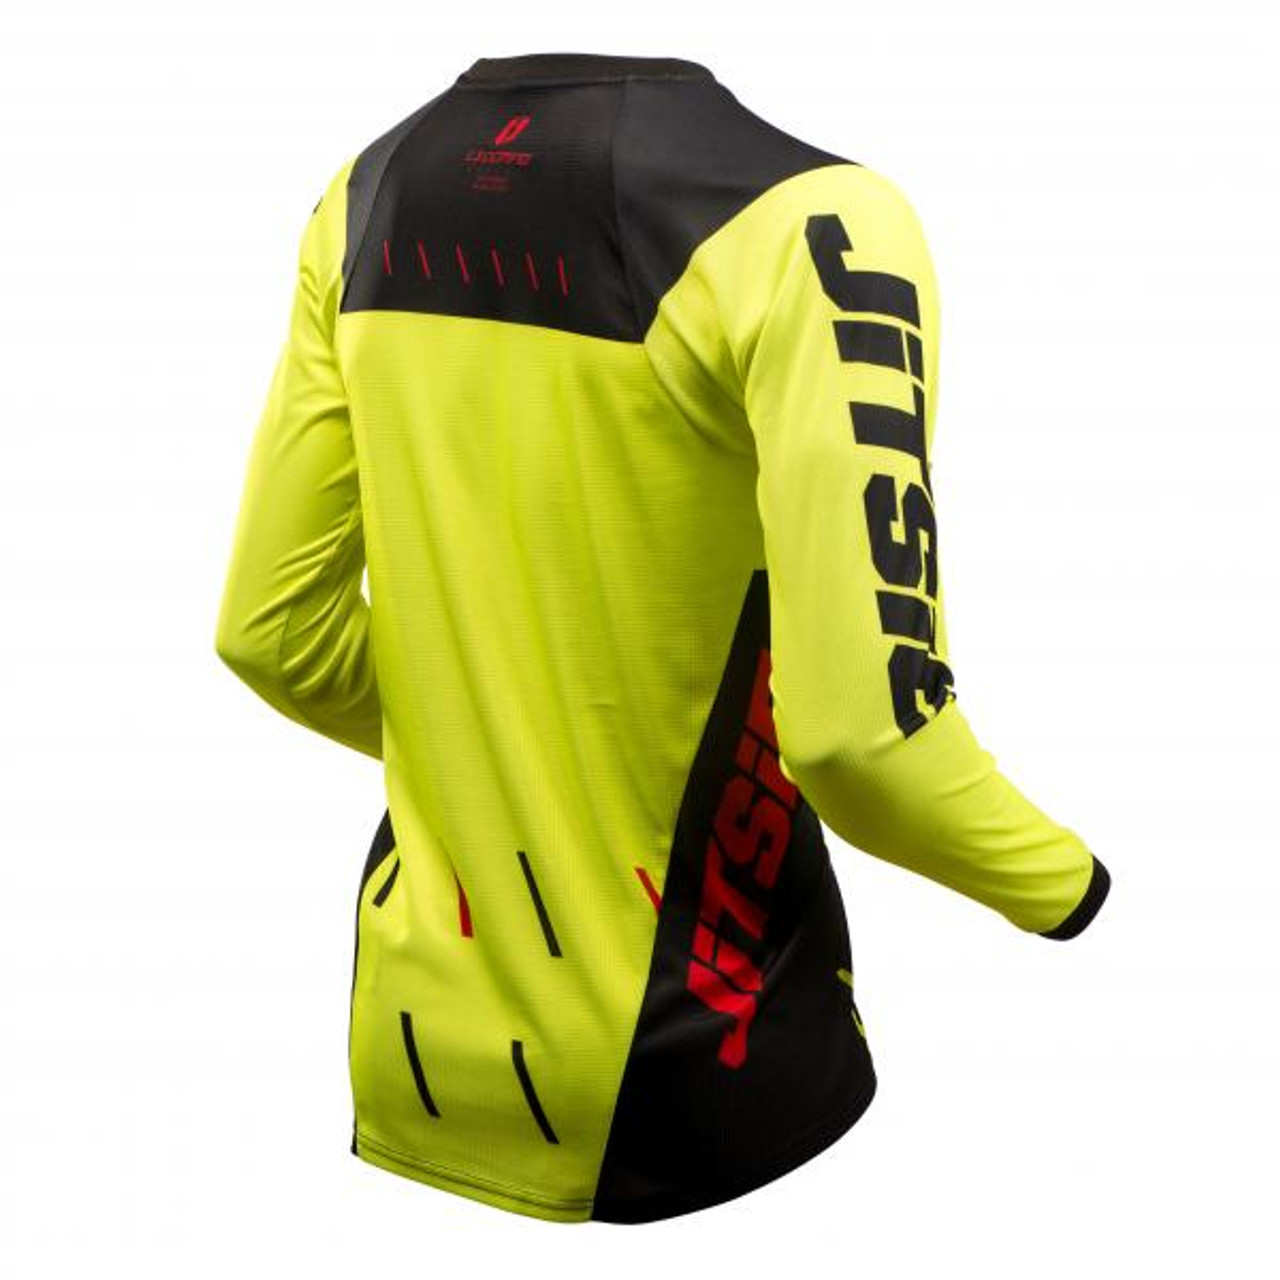 Jersey L3 Domino, black/red/ fluo yellow